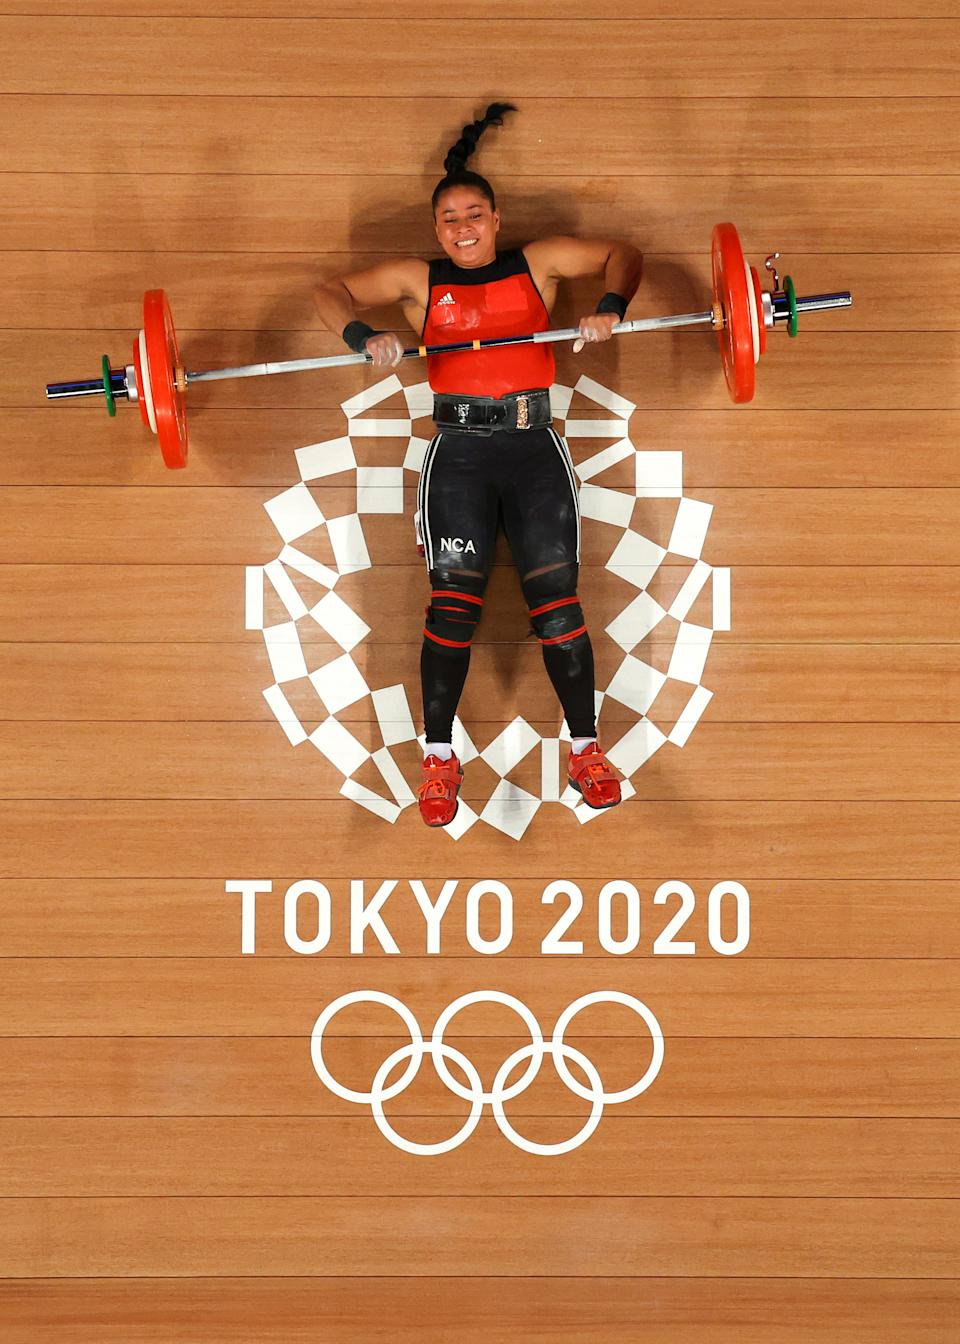 <p>Sema Nancy Ludrick Rivas of Team Nicaragua competes during the Weightlifting - Women's 65kg Group B on day four of the Tokyo 2020 Olympic Games at Tokyo International Forum on July 27, 2021 in Tokyo, Japan. (Photo by Chris Graythen/Getty Images)</p>